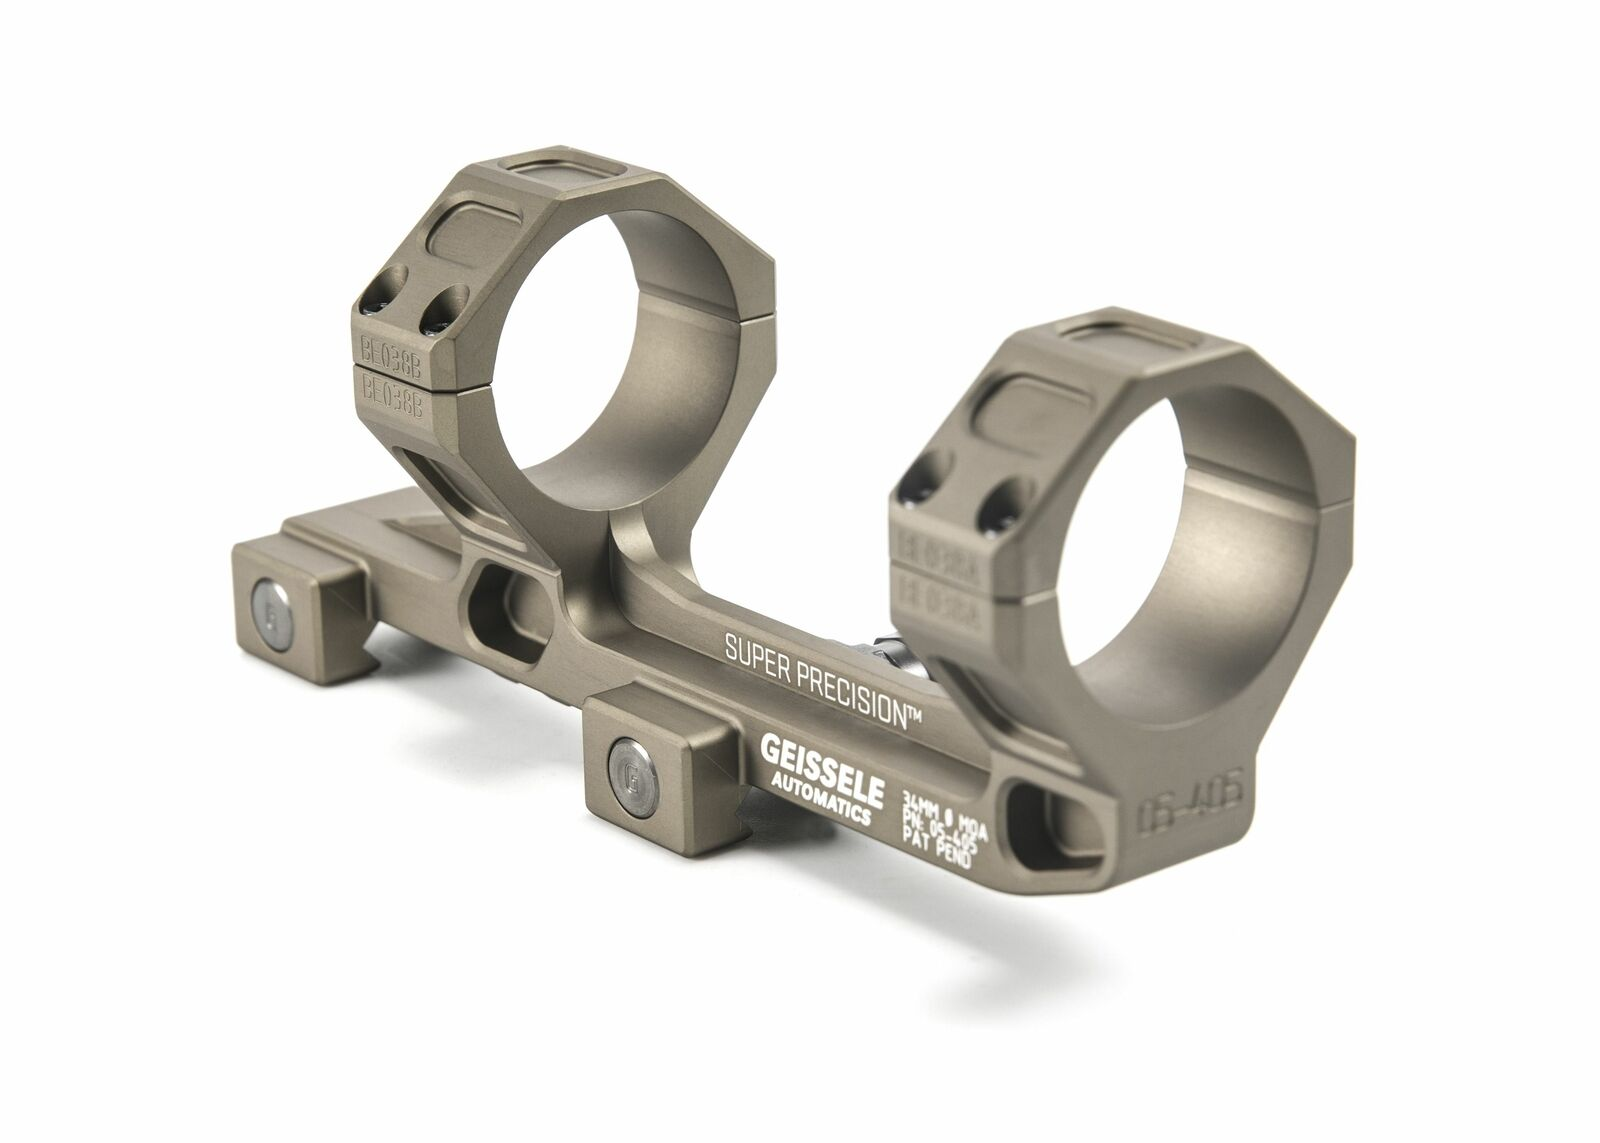 Geissele   Super Precision Series Extended Scope Mount,34mm,7075-T6   05-405S